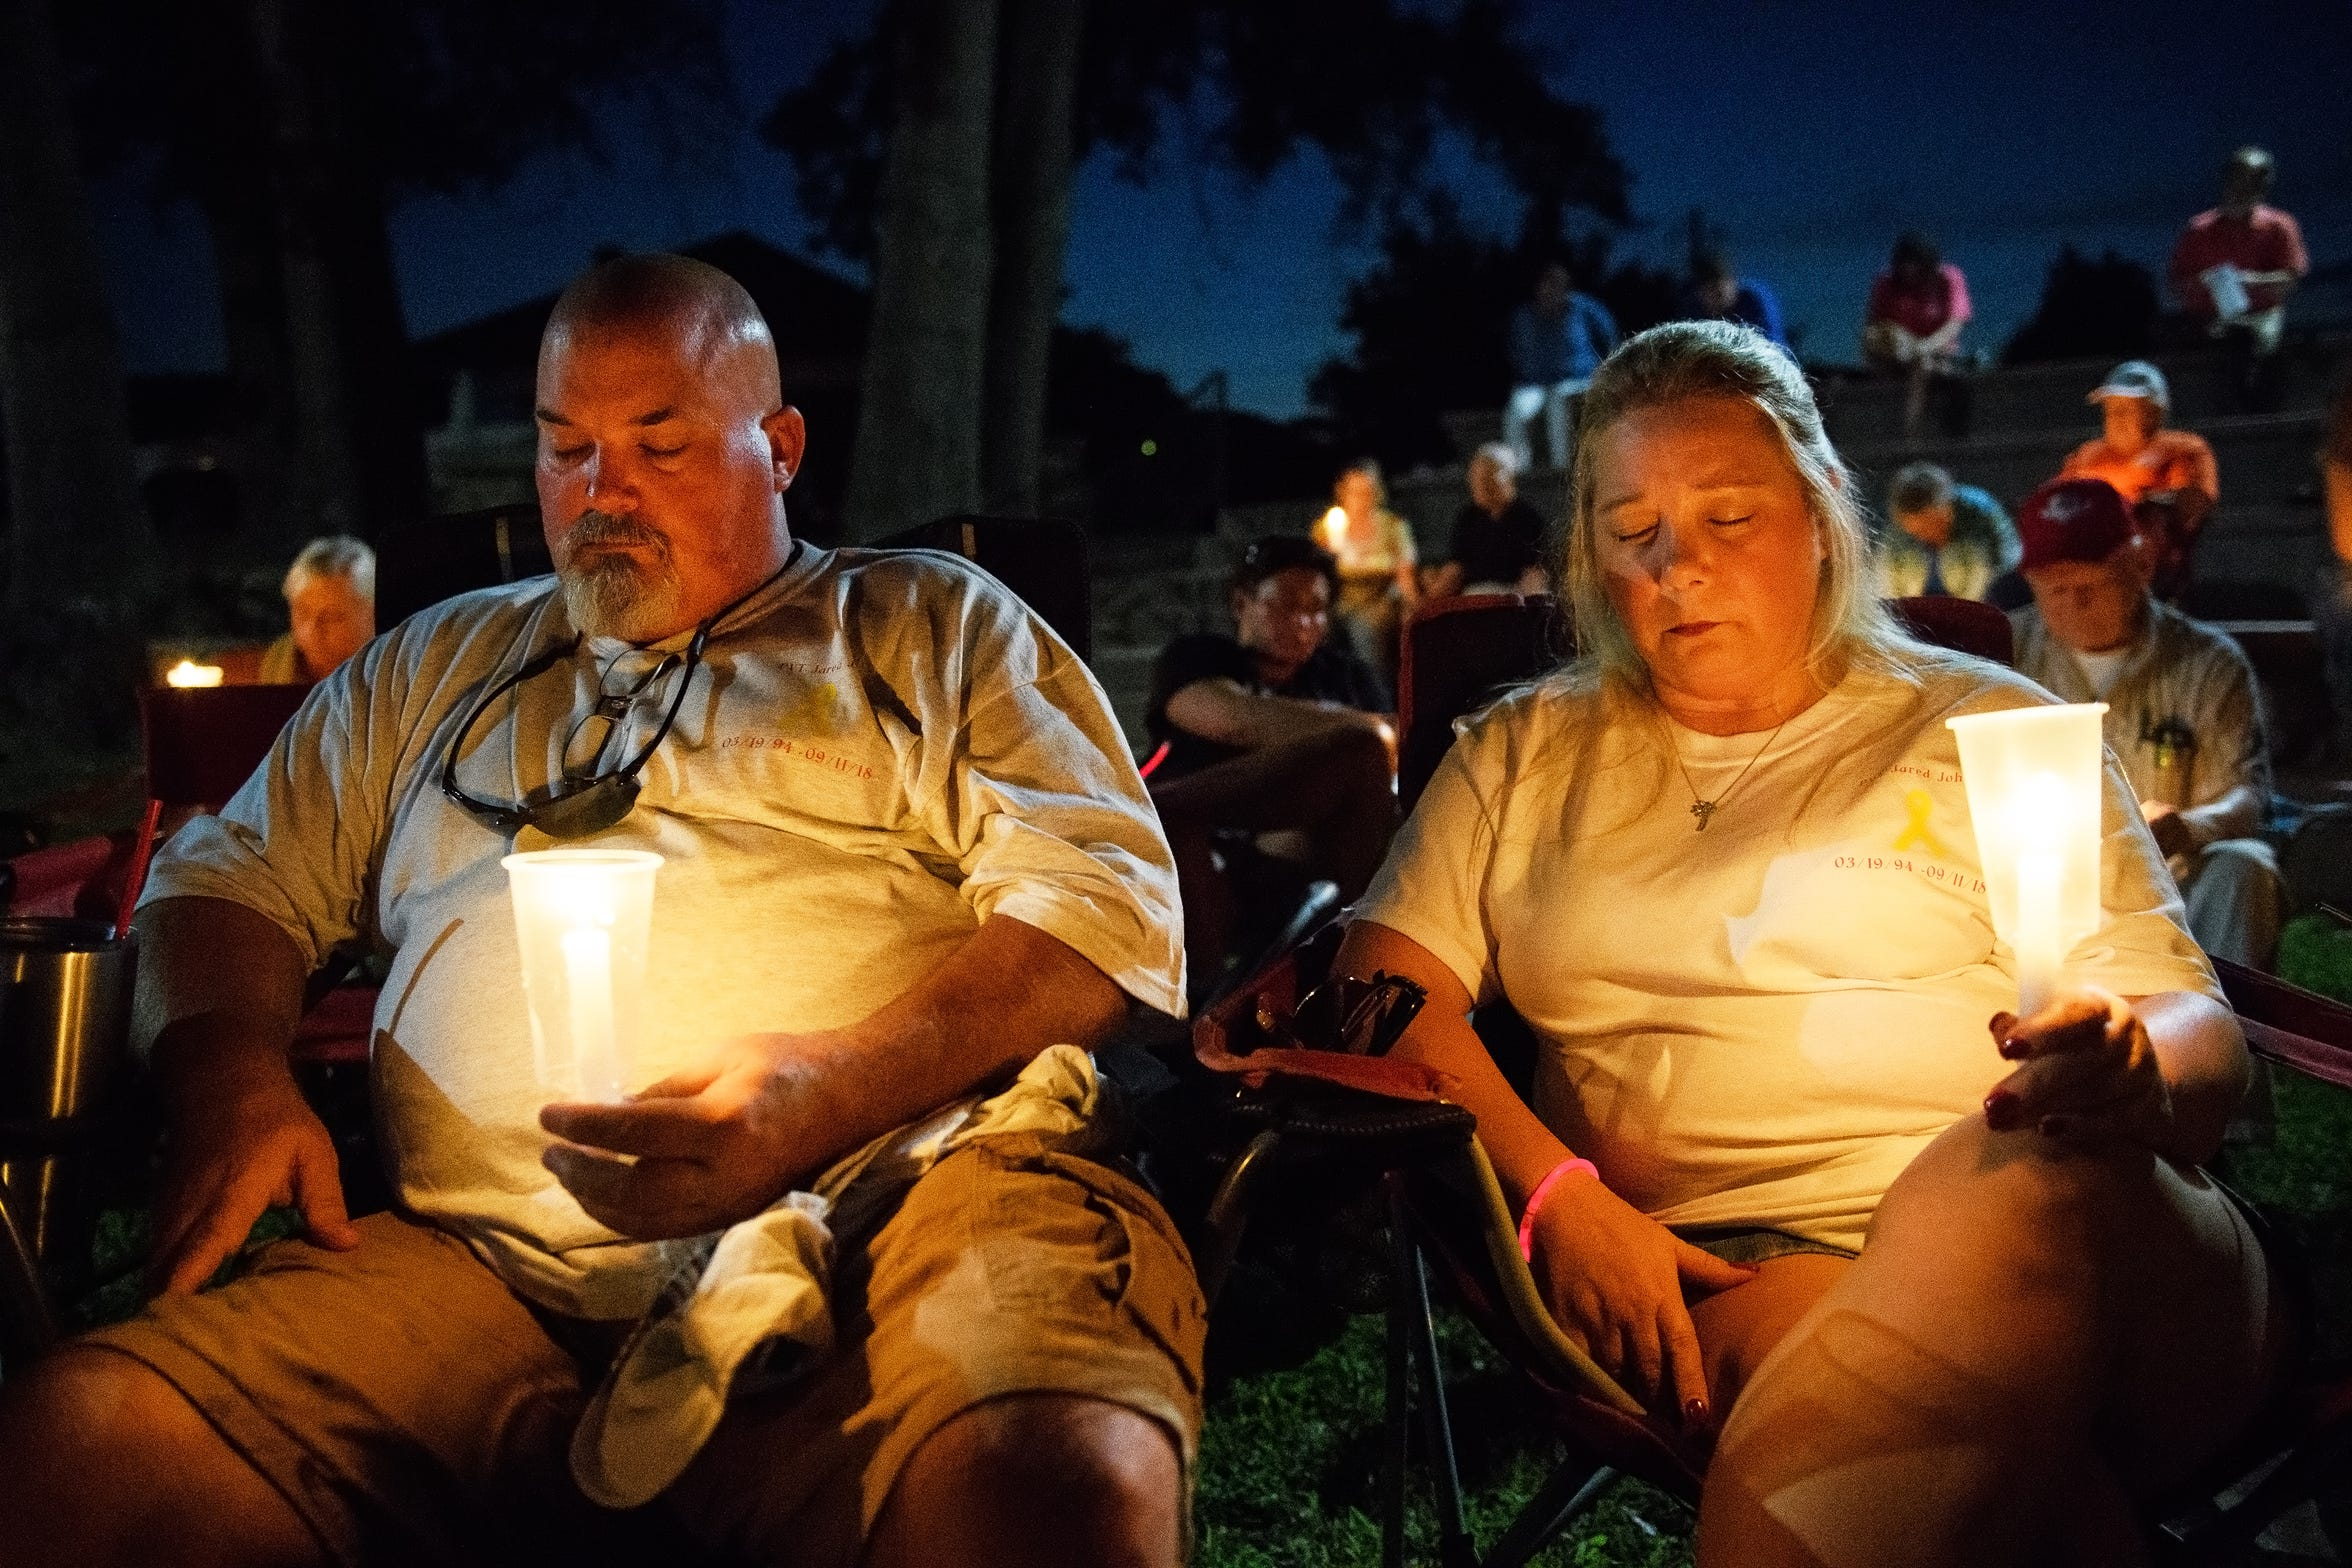 Kevin Johns and his girlfriend Kim pray during a candlelight vigil for Kevin's son, Jared, at Simpsonville City Park on Sunday, Sept. 23, 2018.